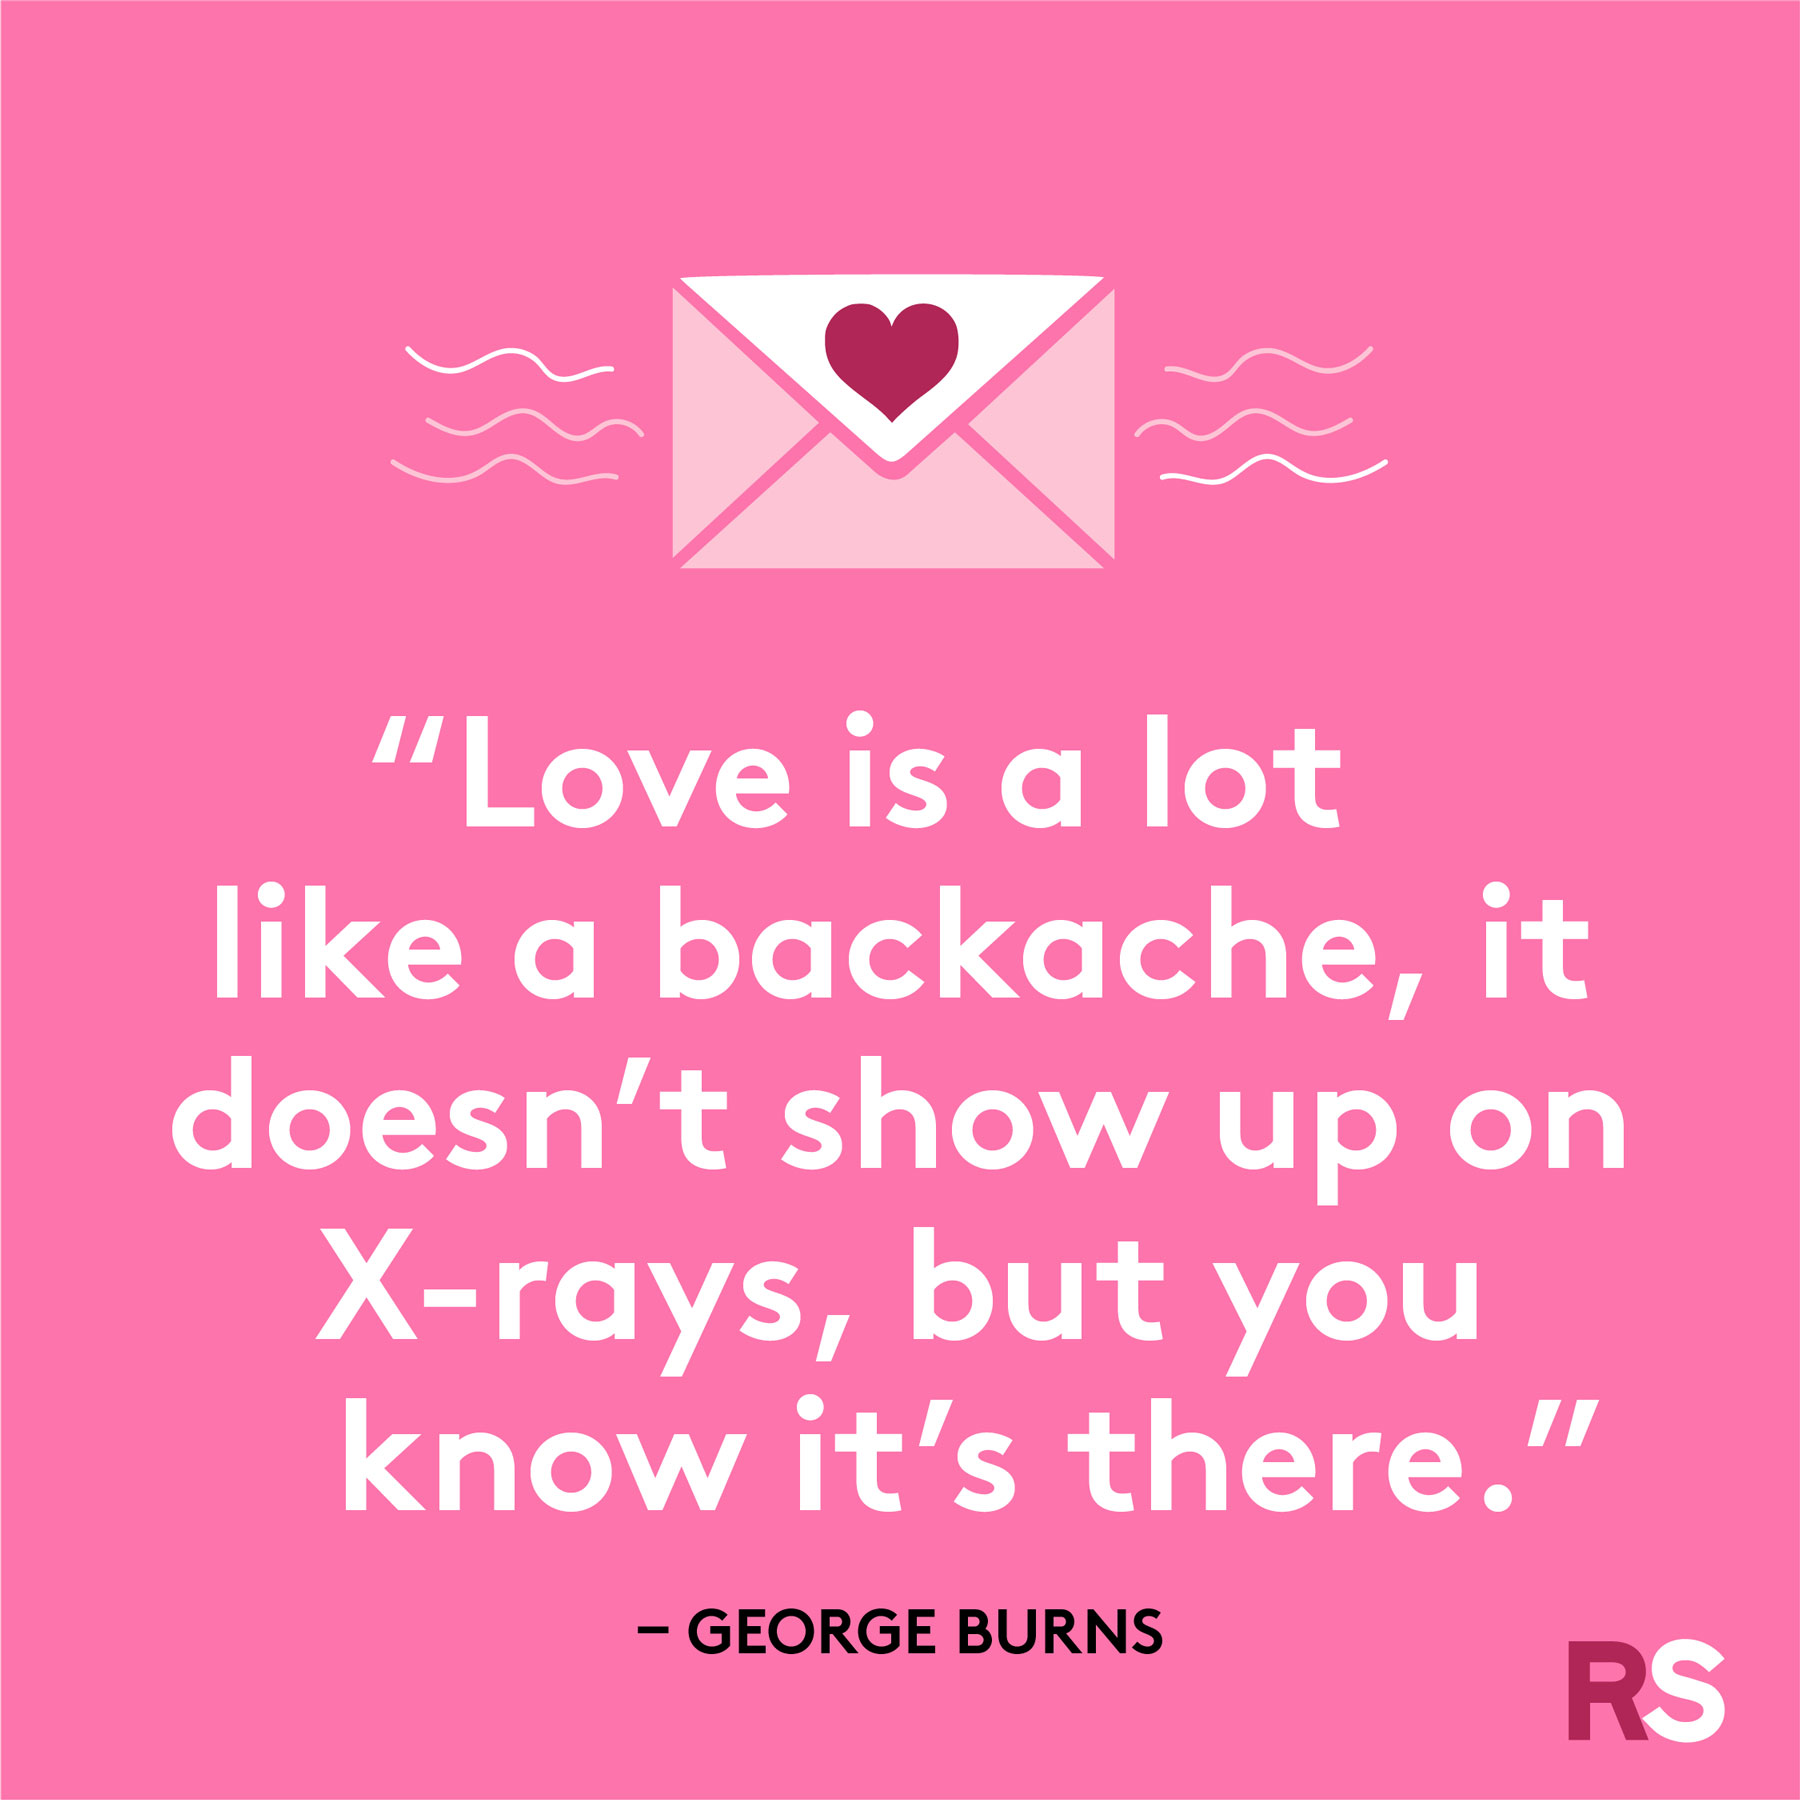 Love quotes, quotes about love - George Burns